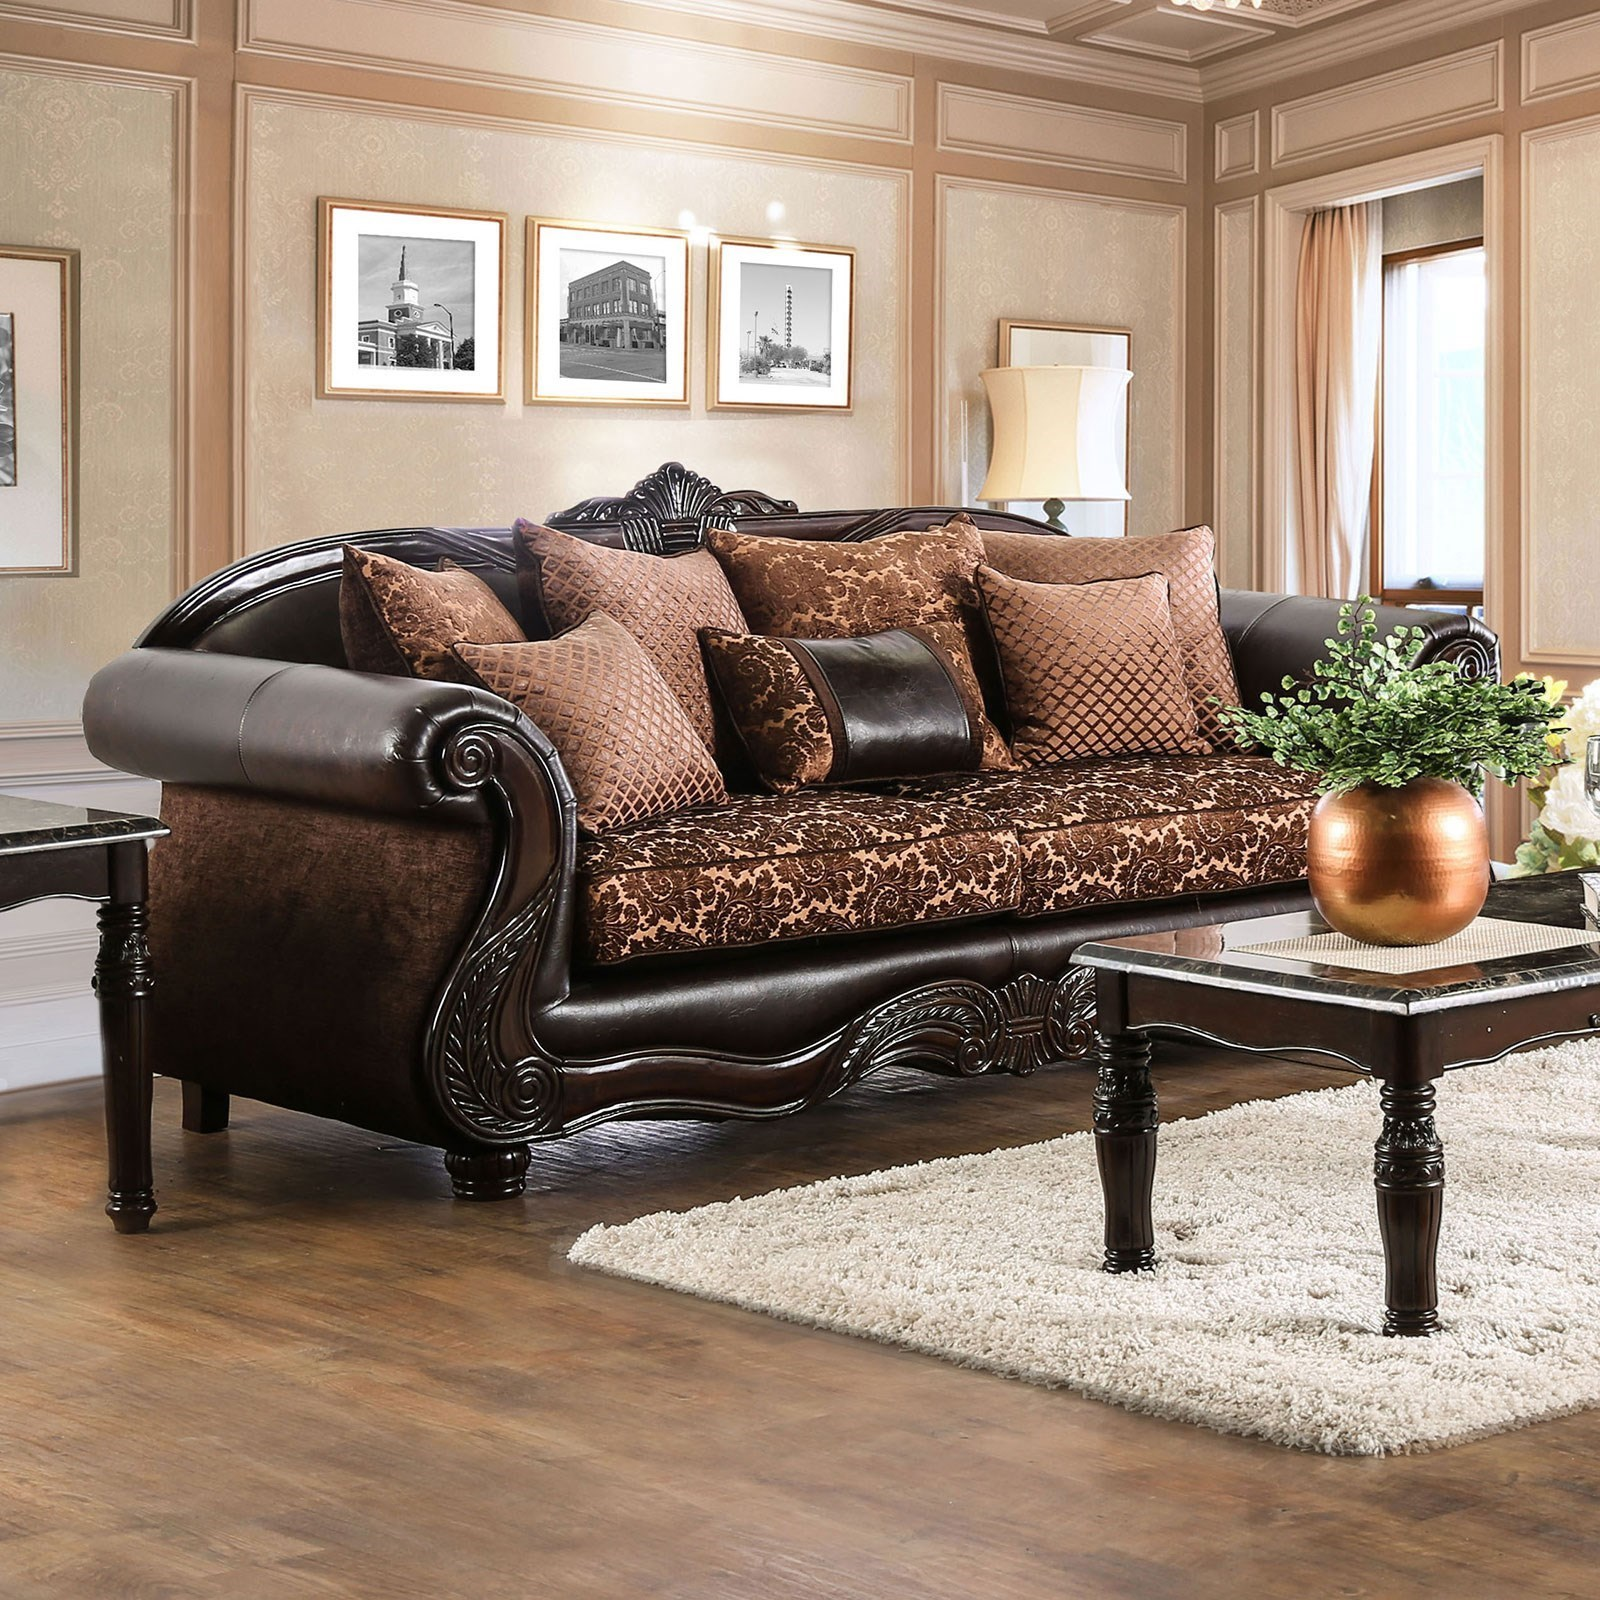 Home Furniture For Less: Furniture Of America Elpis Traditional Fabric And Faux